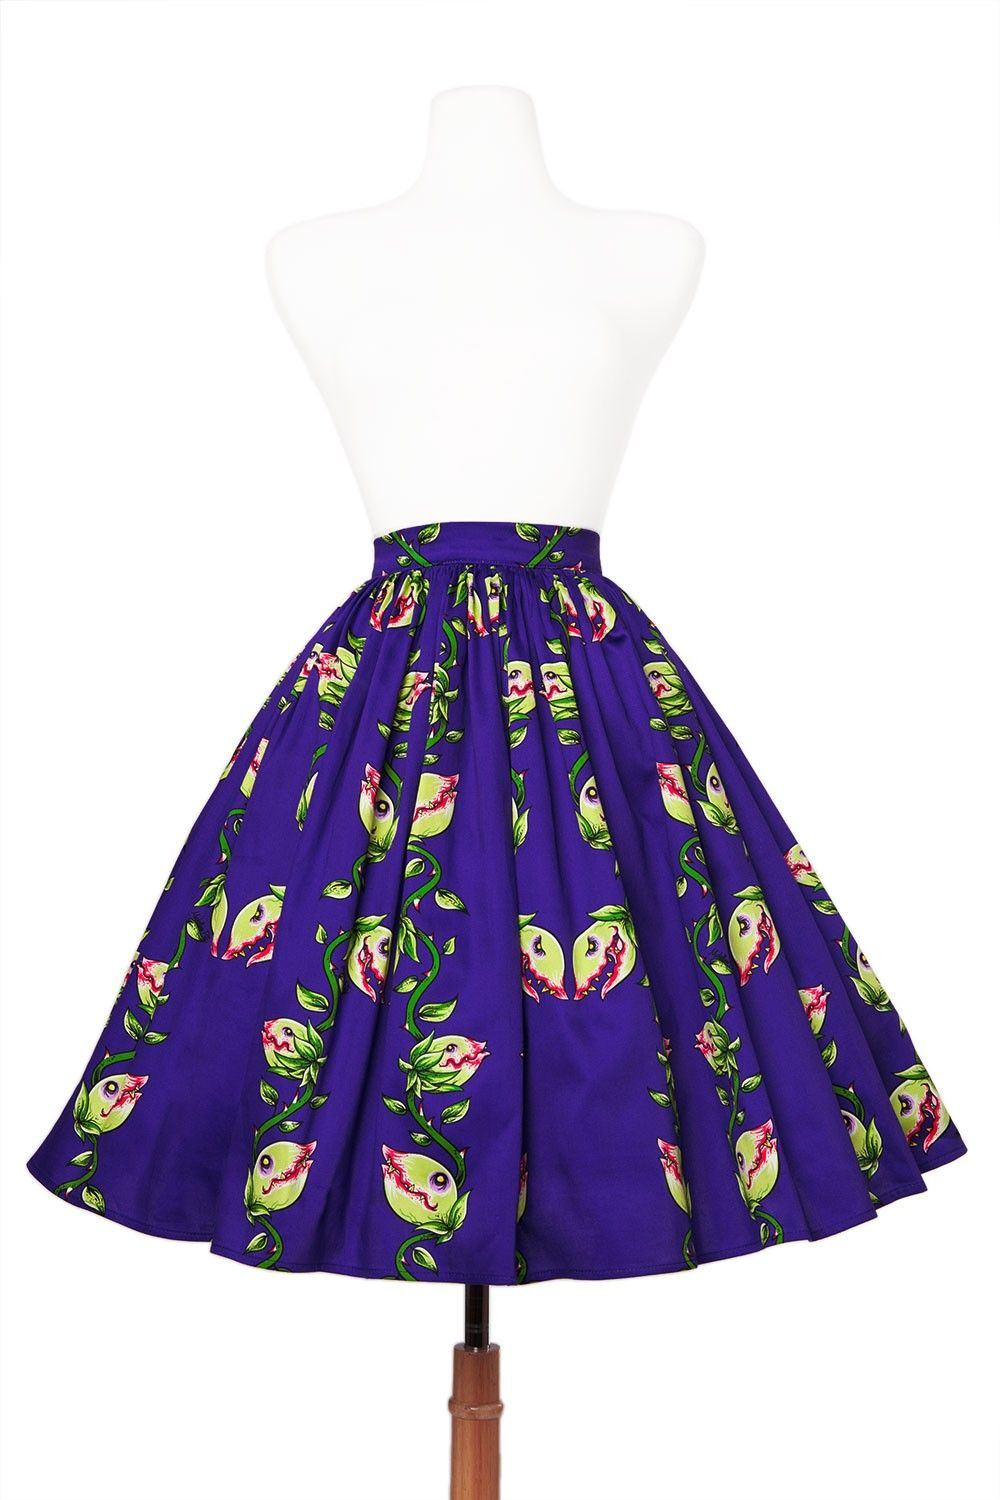 Deadly Dames - Darling Dames Skirt in Venus Fly Trap Print | Pinup Girl Clothing